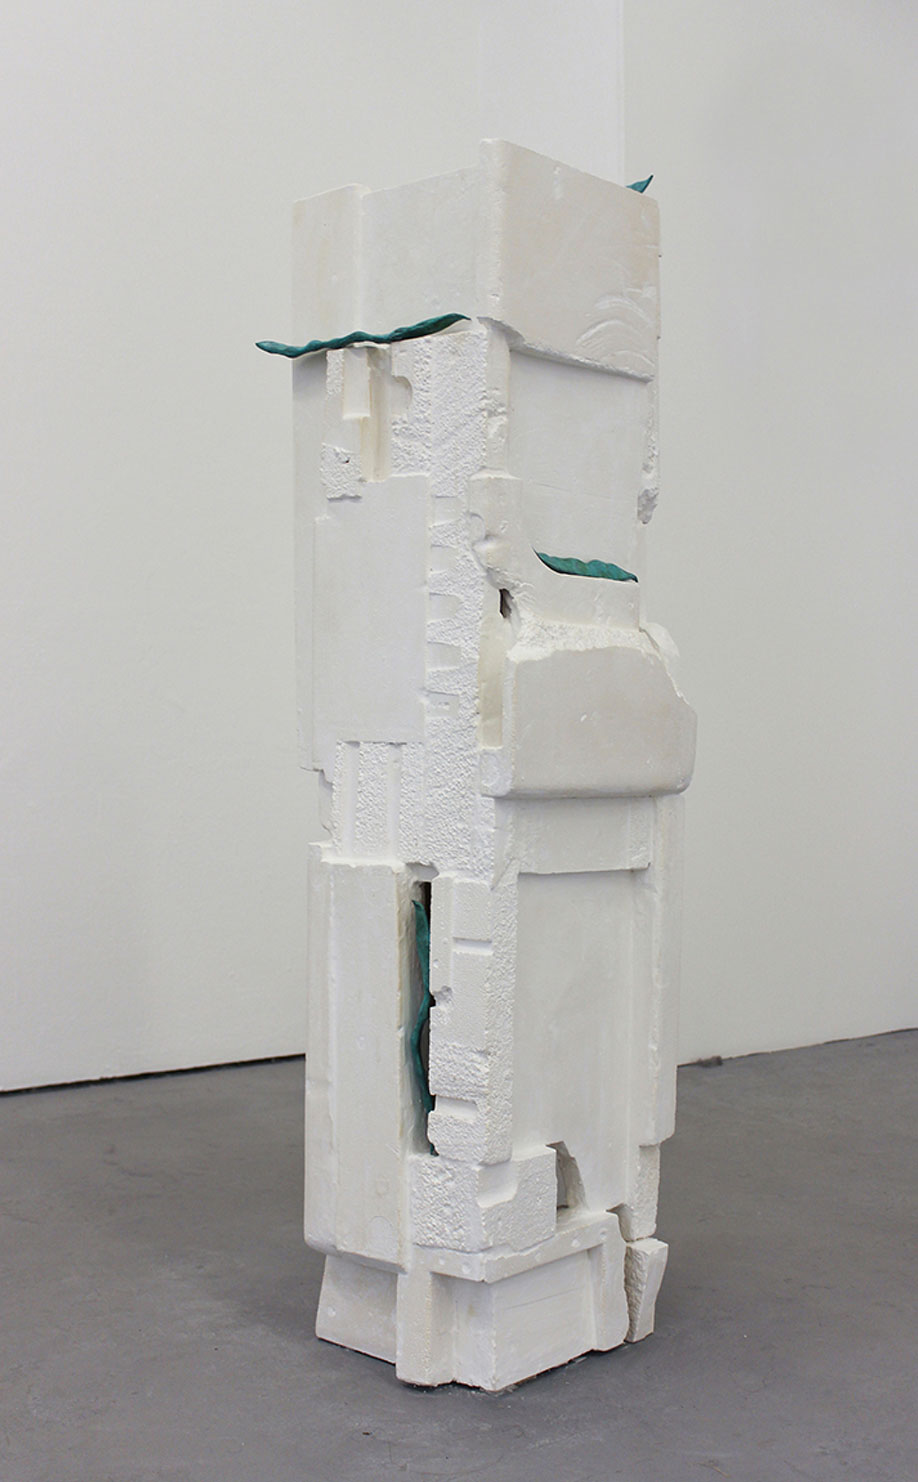 <b>Title: </b>Totem<br /><b>Year: </b>2013<br /><b>Medium: </b>Plaster, wood, and patinated bronze<br /><b>Size: </b>35 x 120 x 35 cm